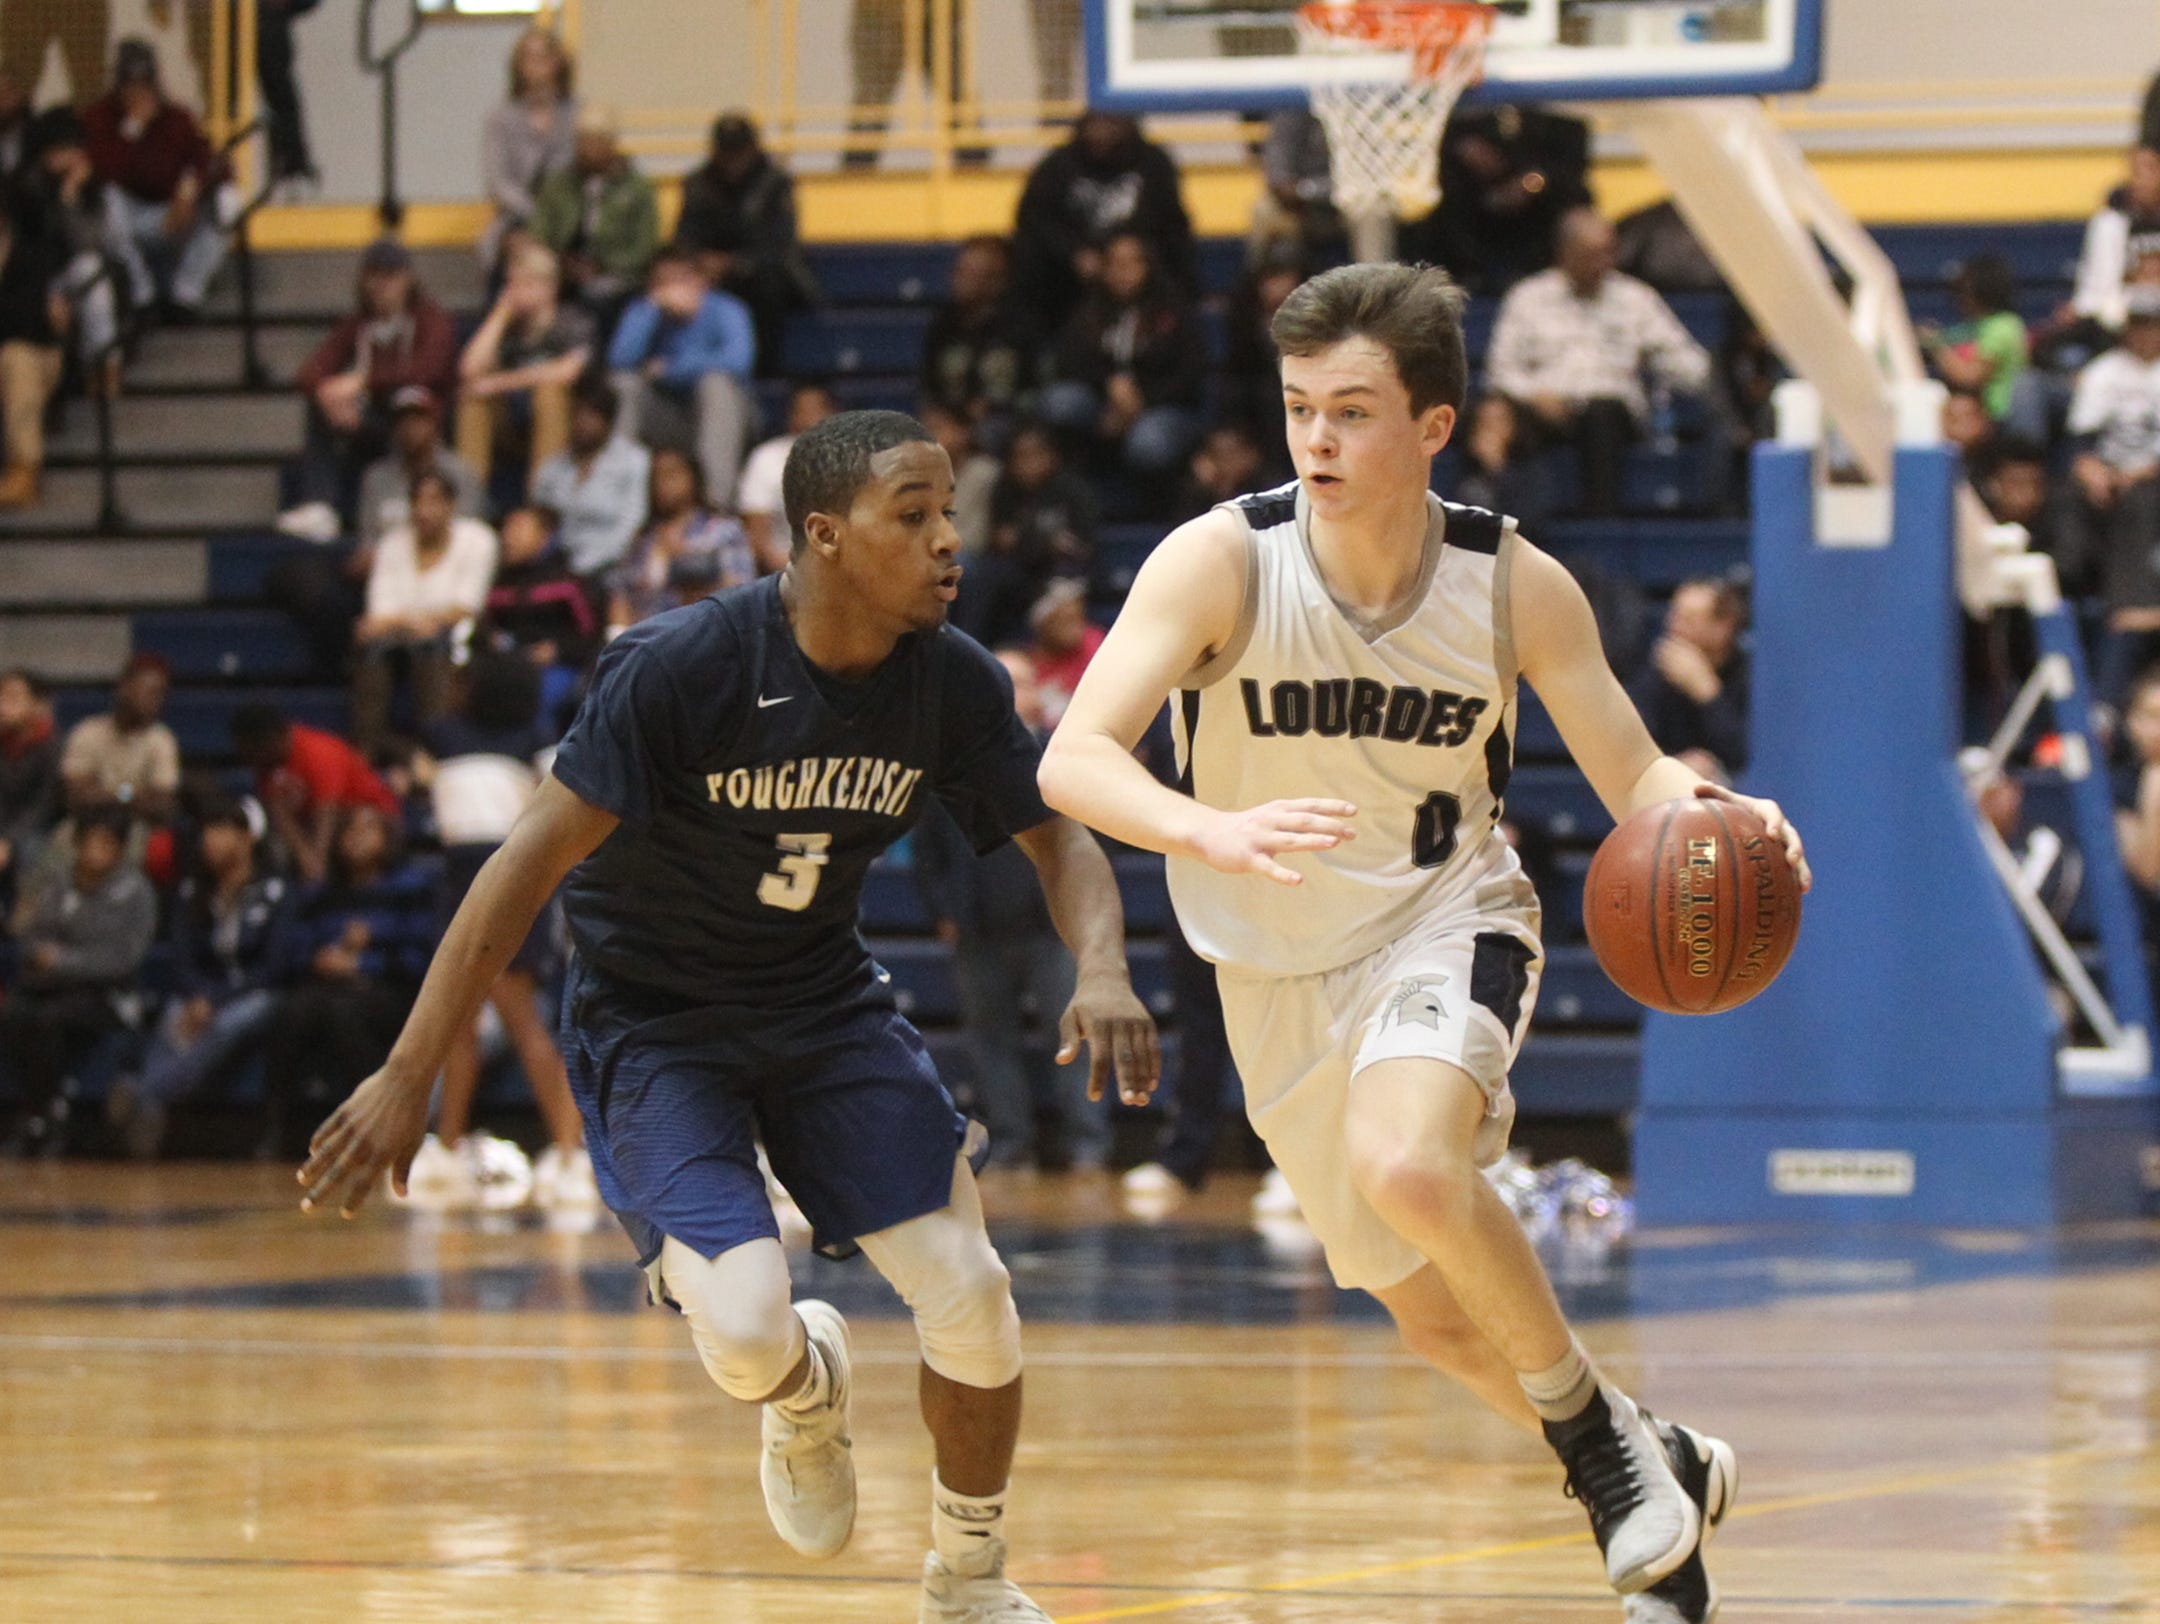 Lourdes' Brady Hildebrand dribbles up court against Poughkeepsie's Mo'Quez Dickens during the Class A regional final on March 11, 2017.